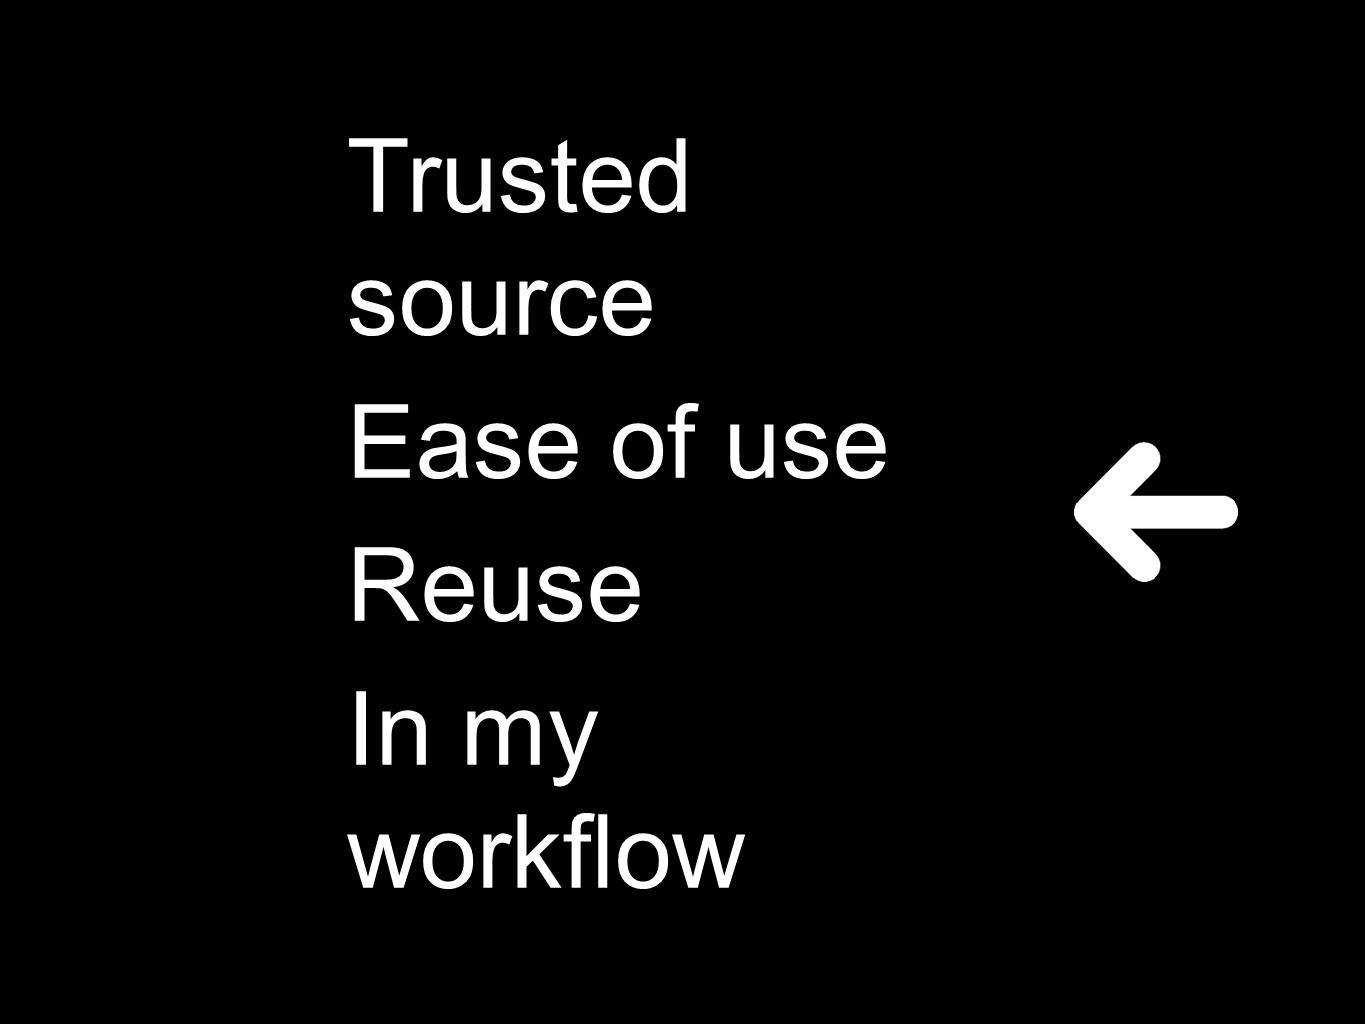 Trusted source Ease of use Reuse In my workflow